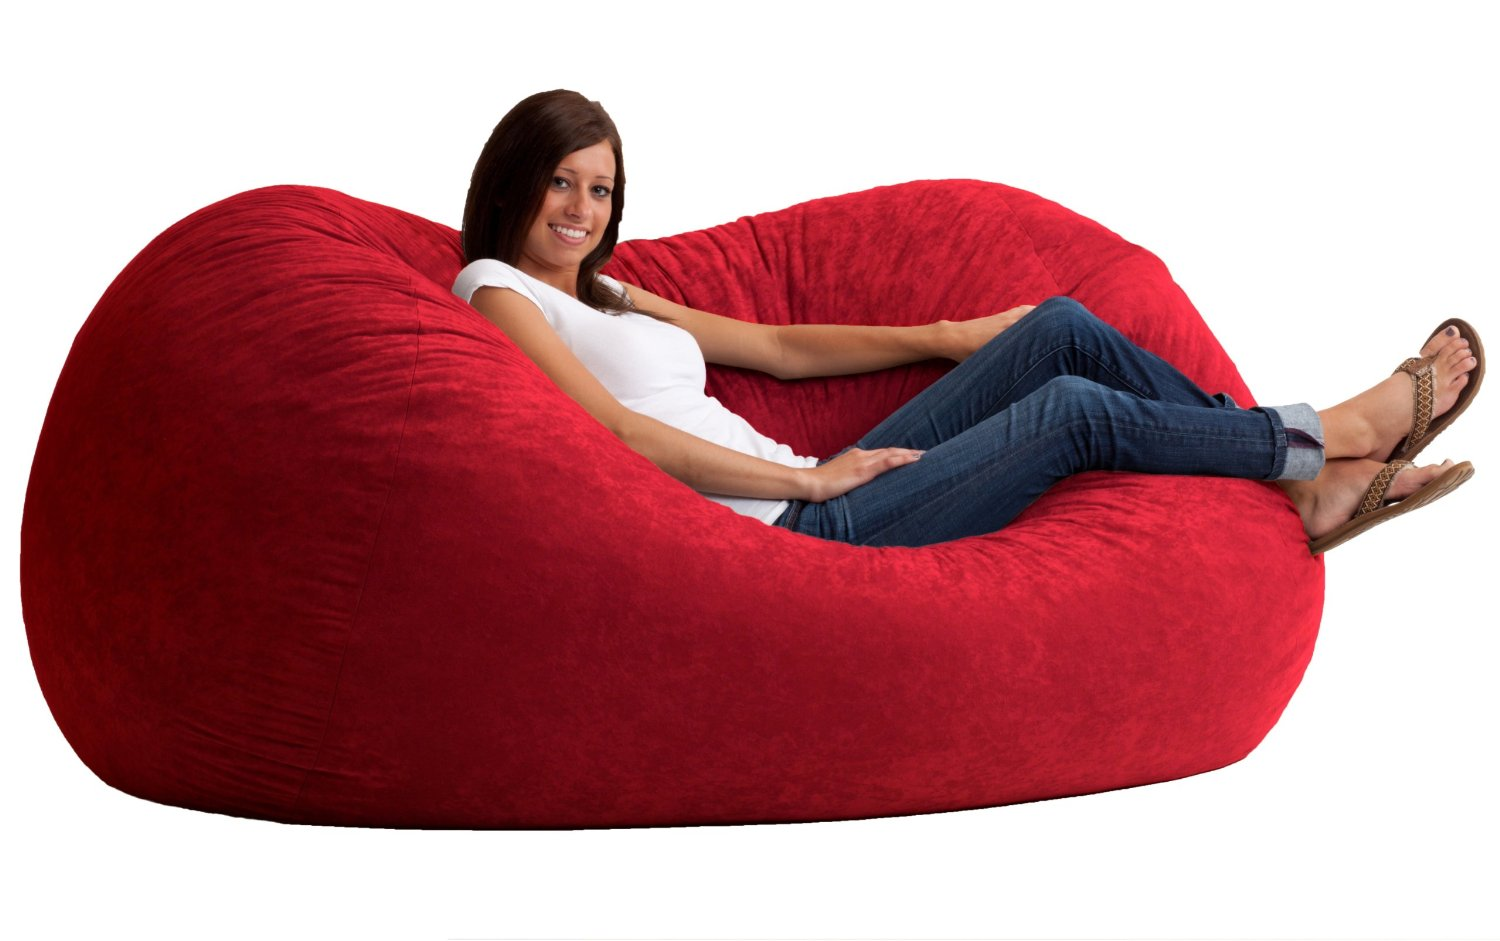 huge bean bag chair tempting large red fuzzy bean bag chair in bedroom decor